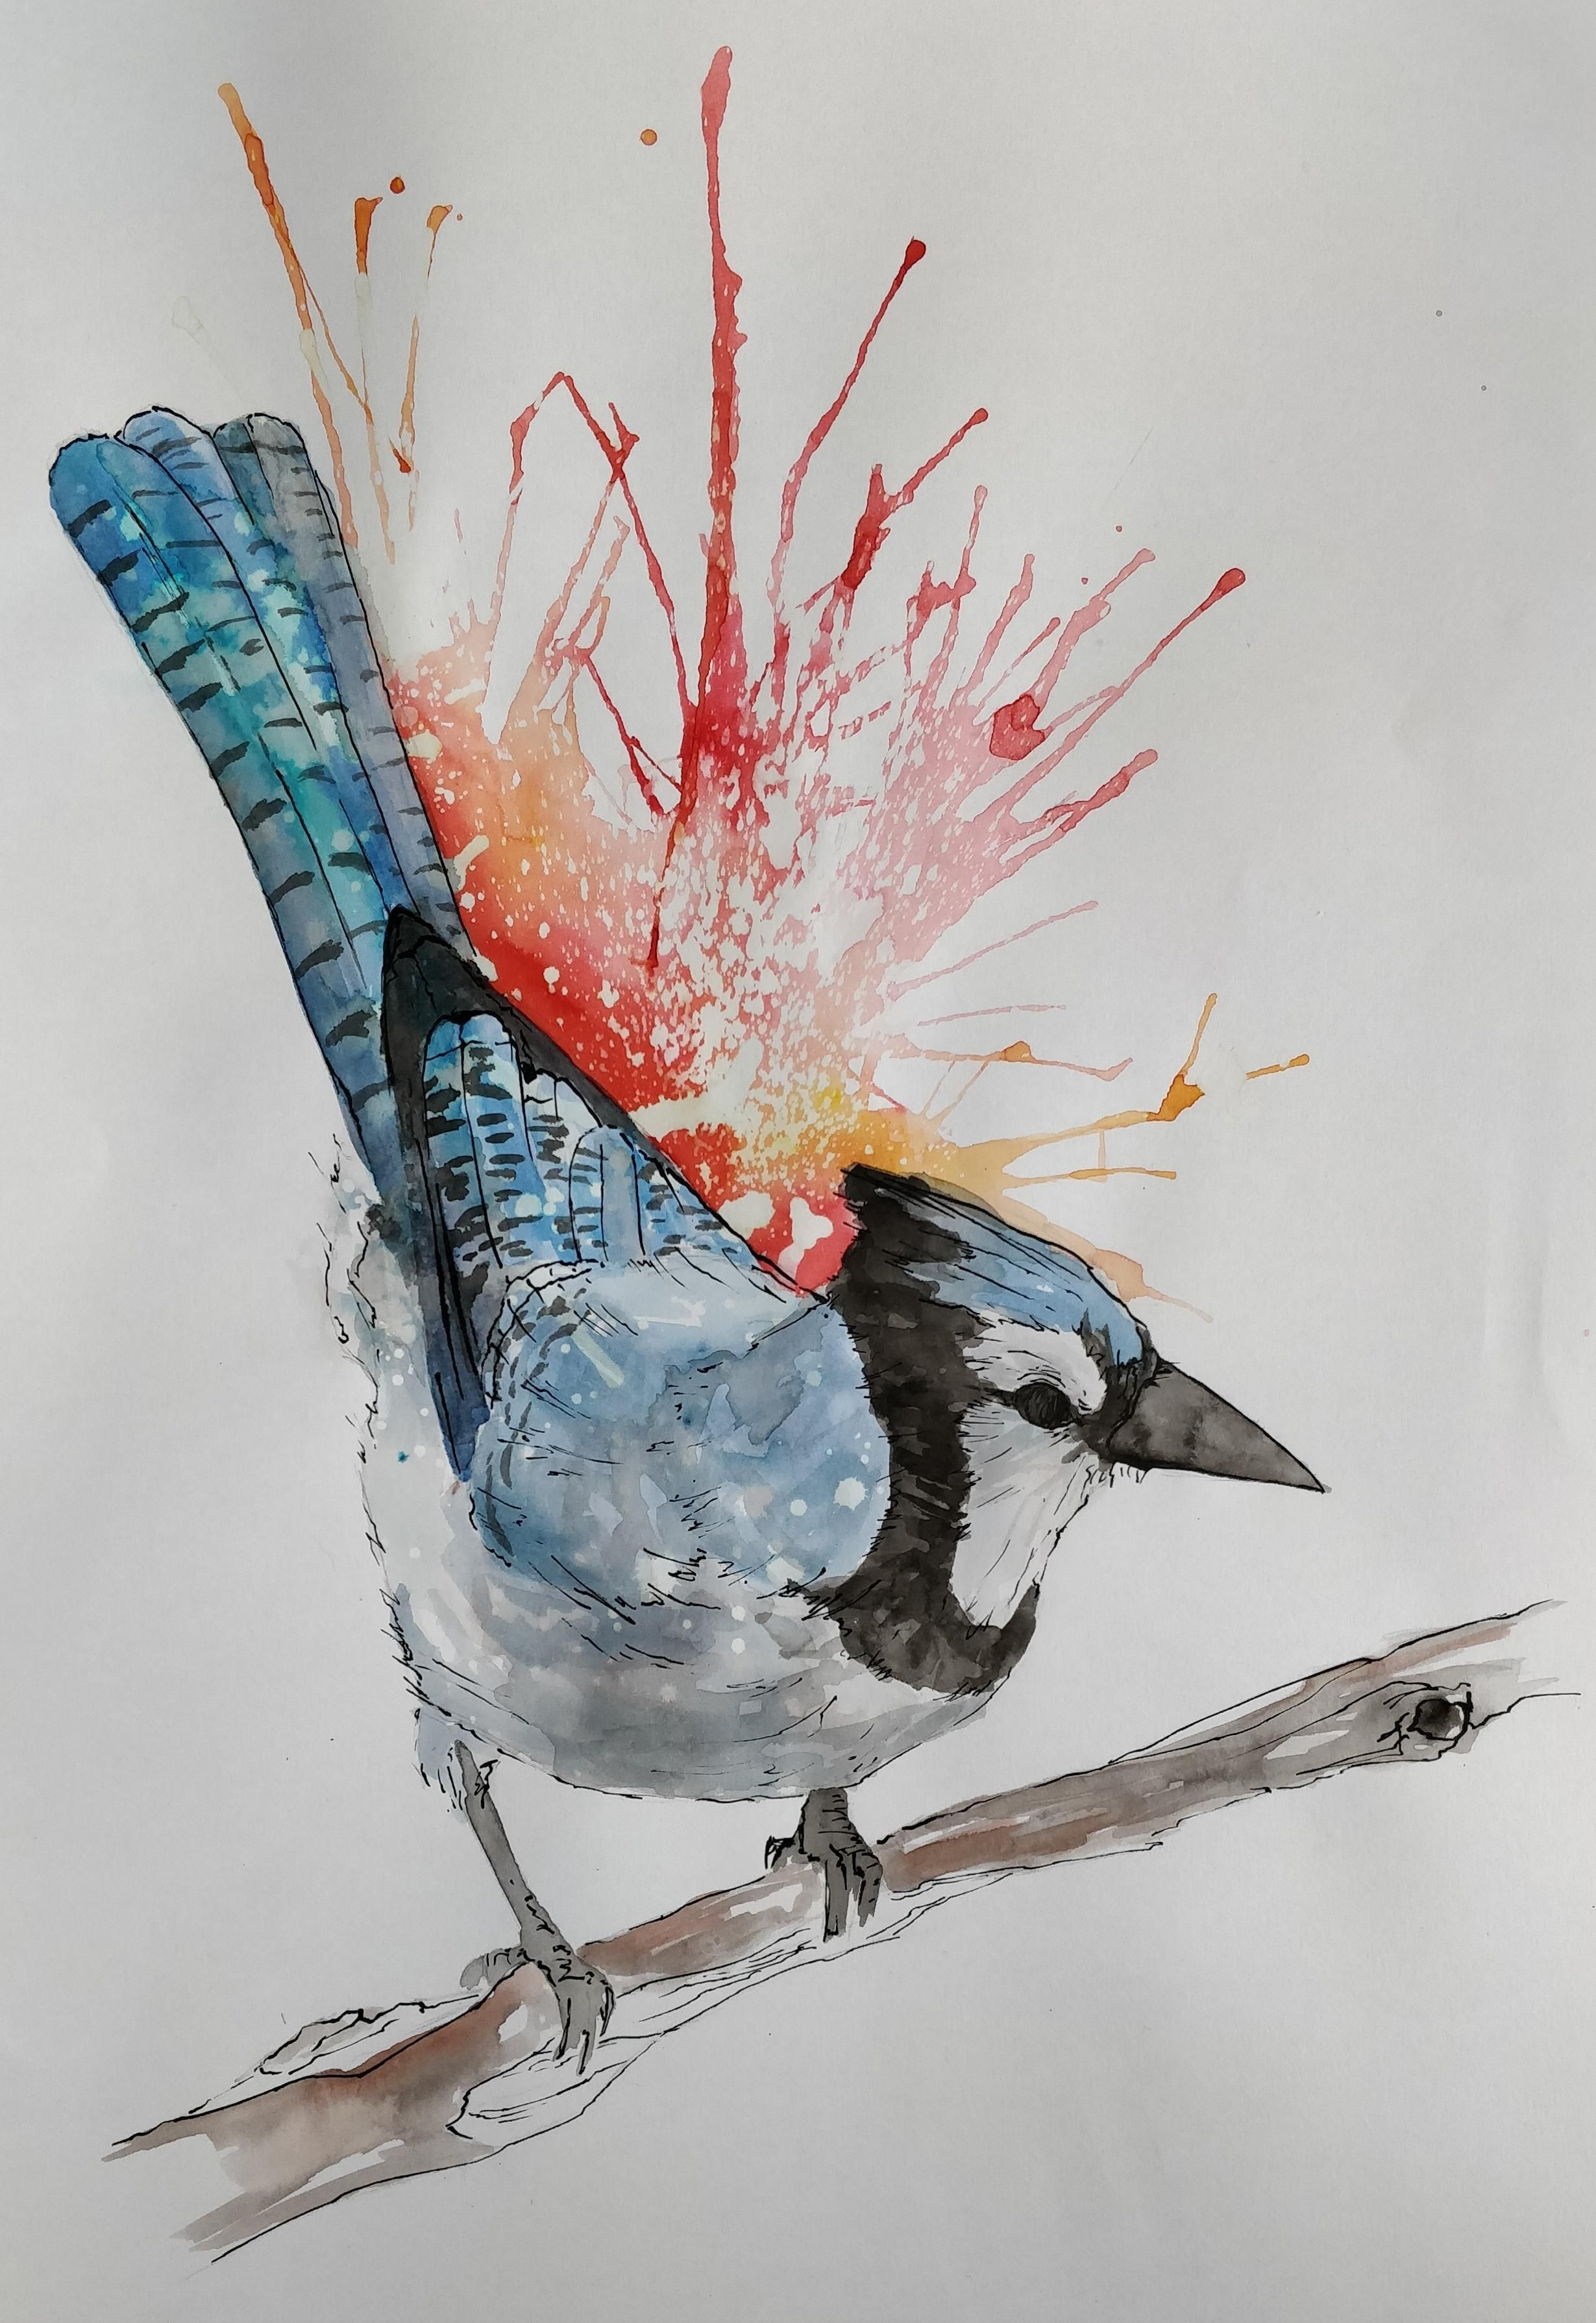 Blue Jay - Brusho Indian Ink and Bleach - 11.7 x 16.5